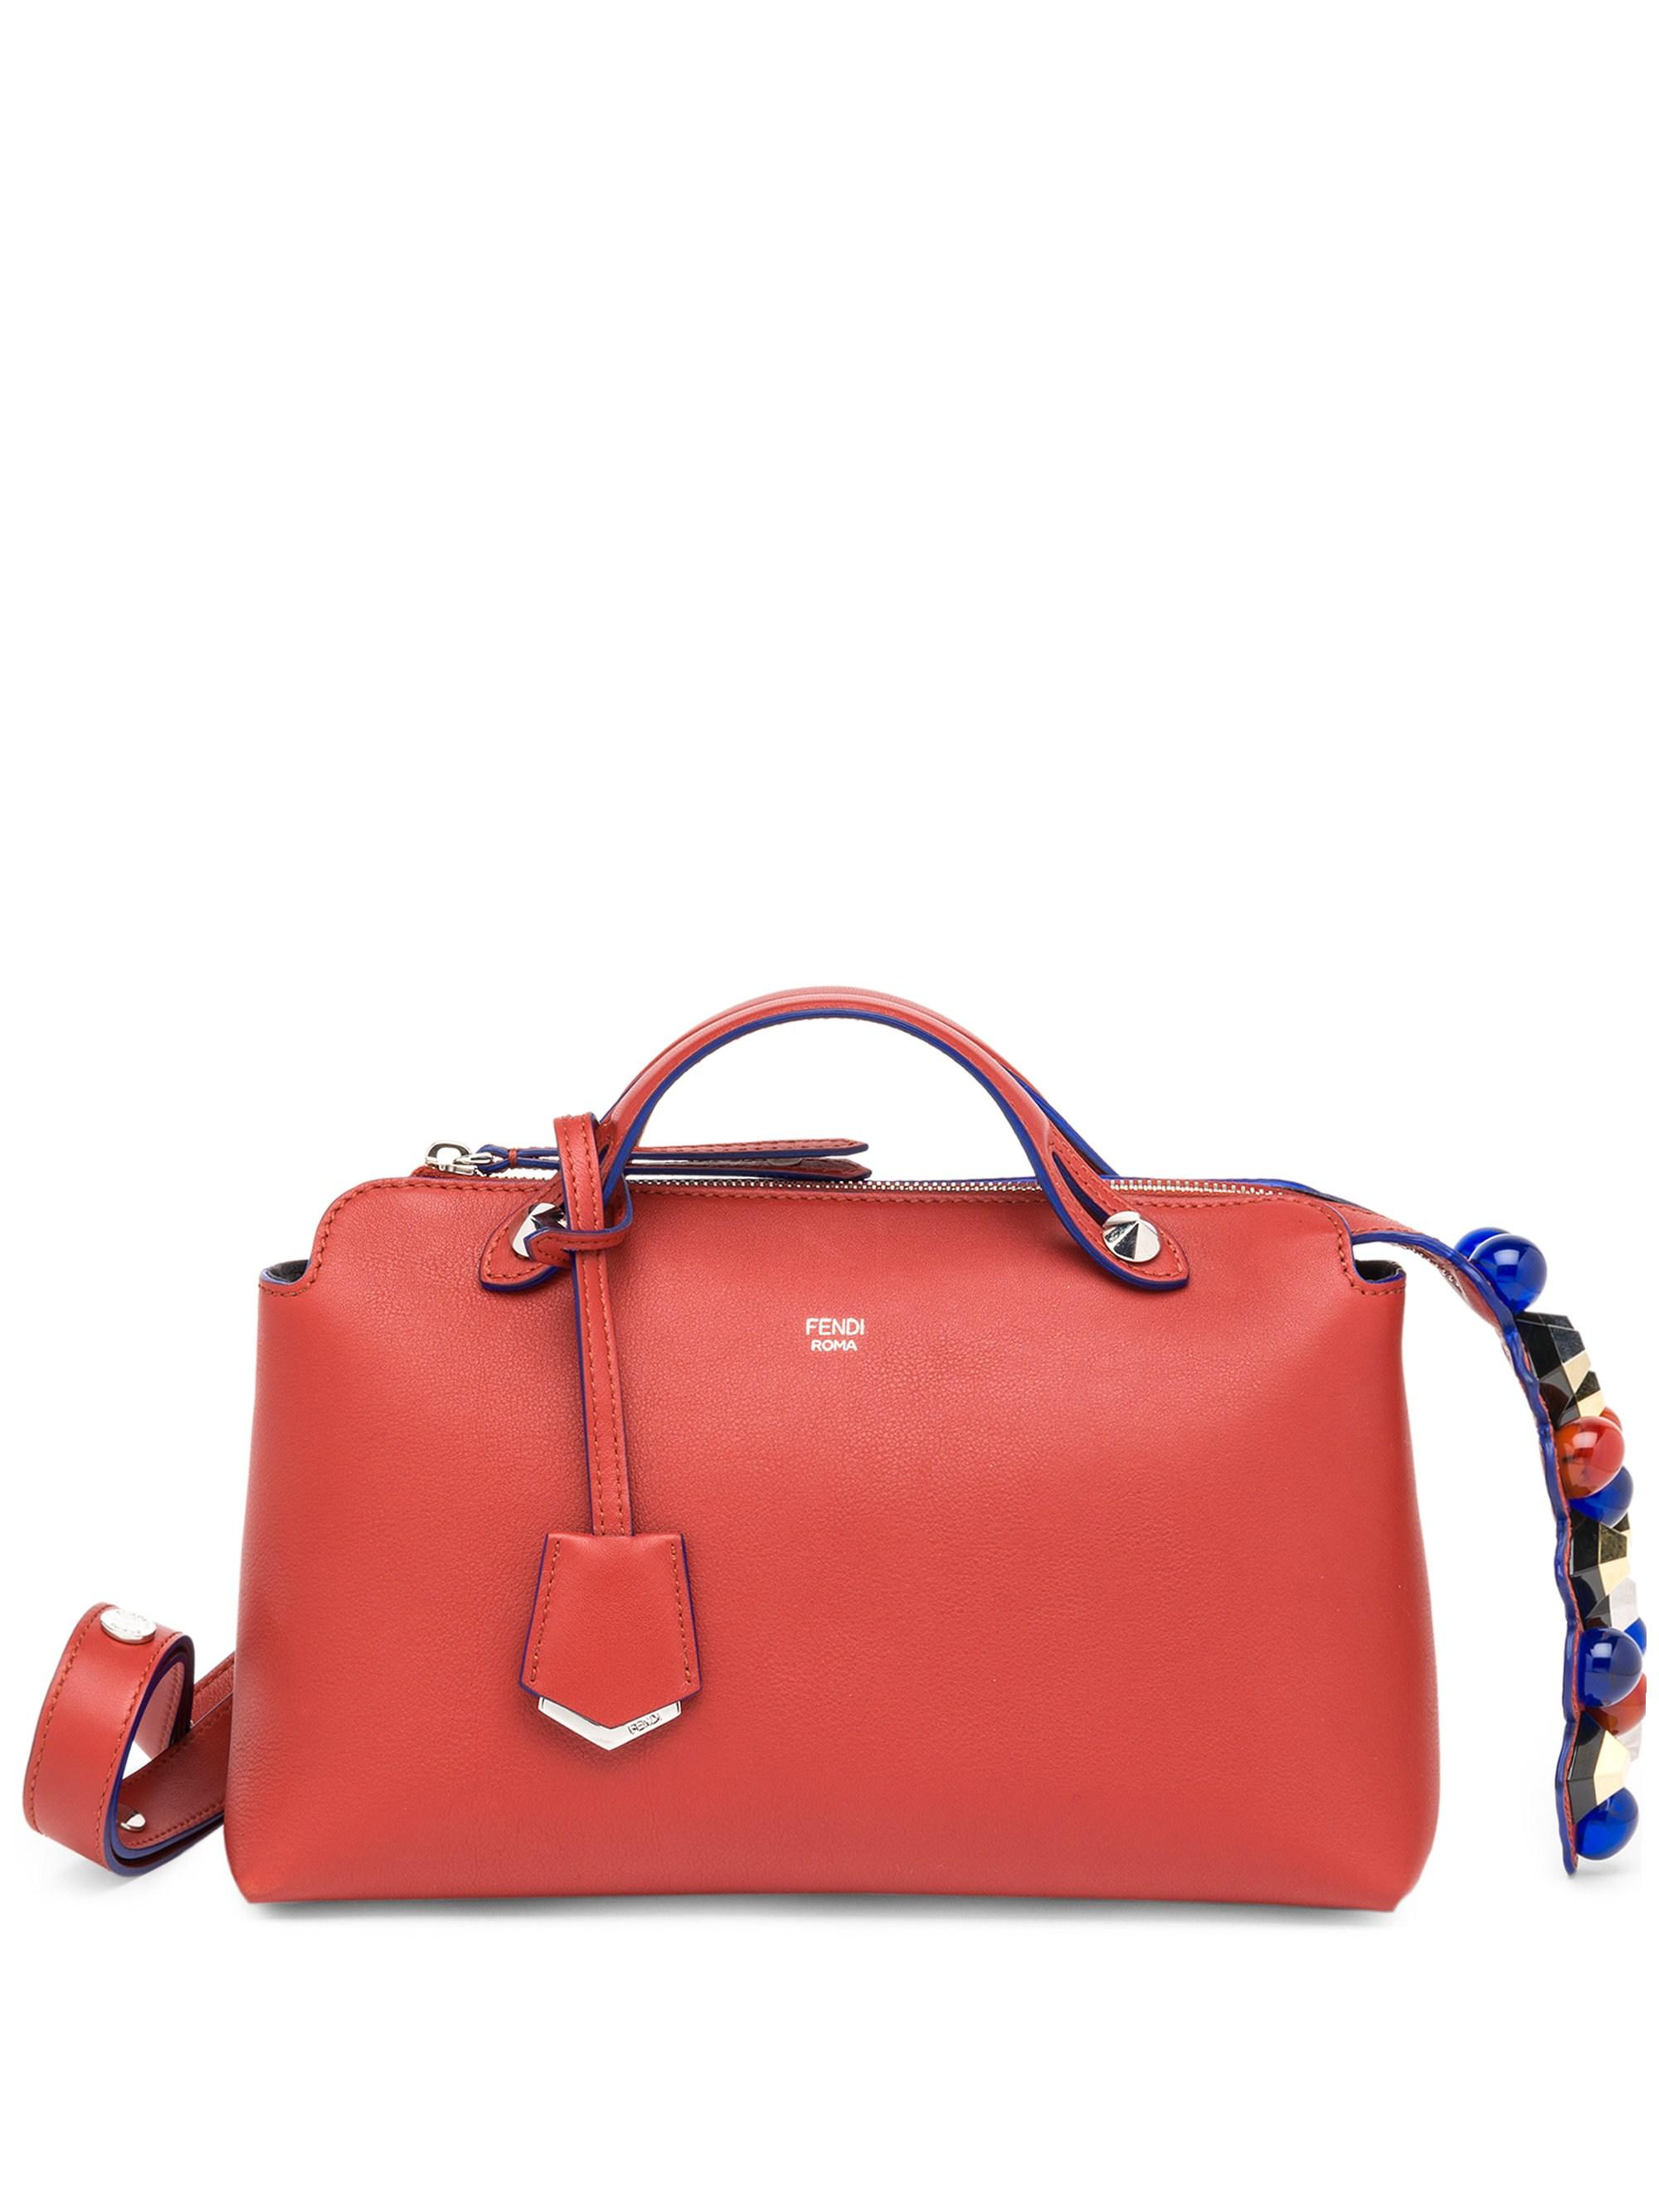 e0d388dc7ed7 Lyst - Fendi Women s By The Way Small Studded Leather Satchel ...